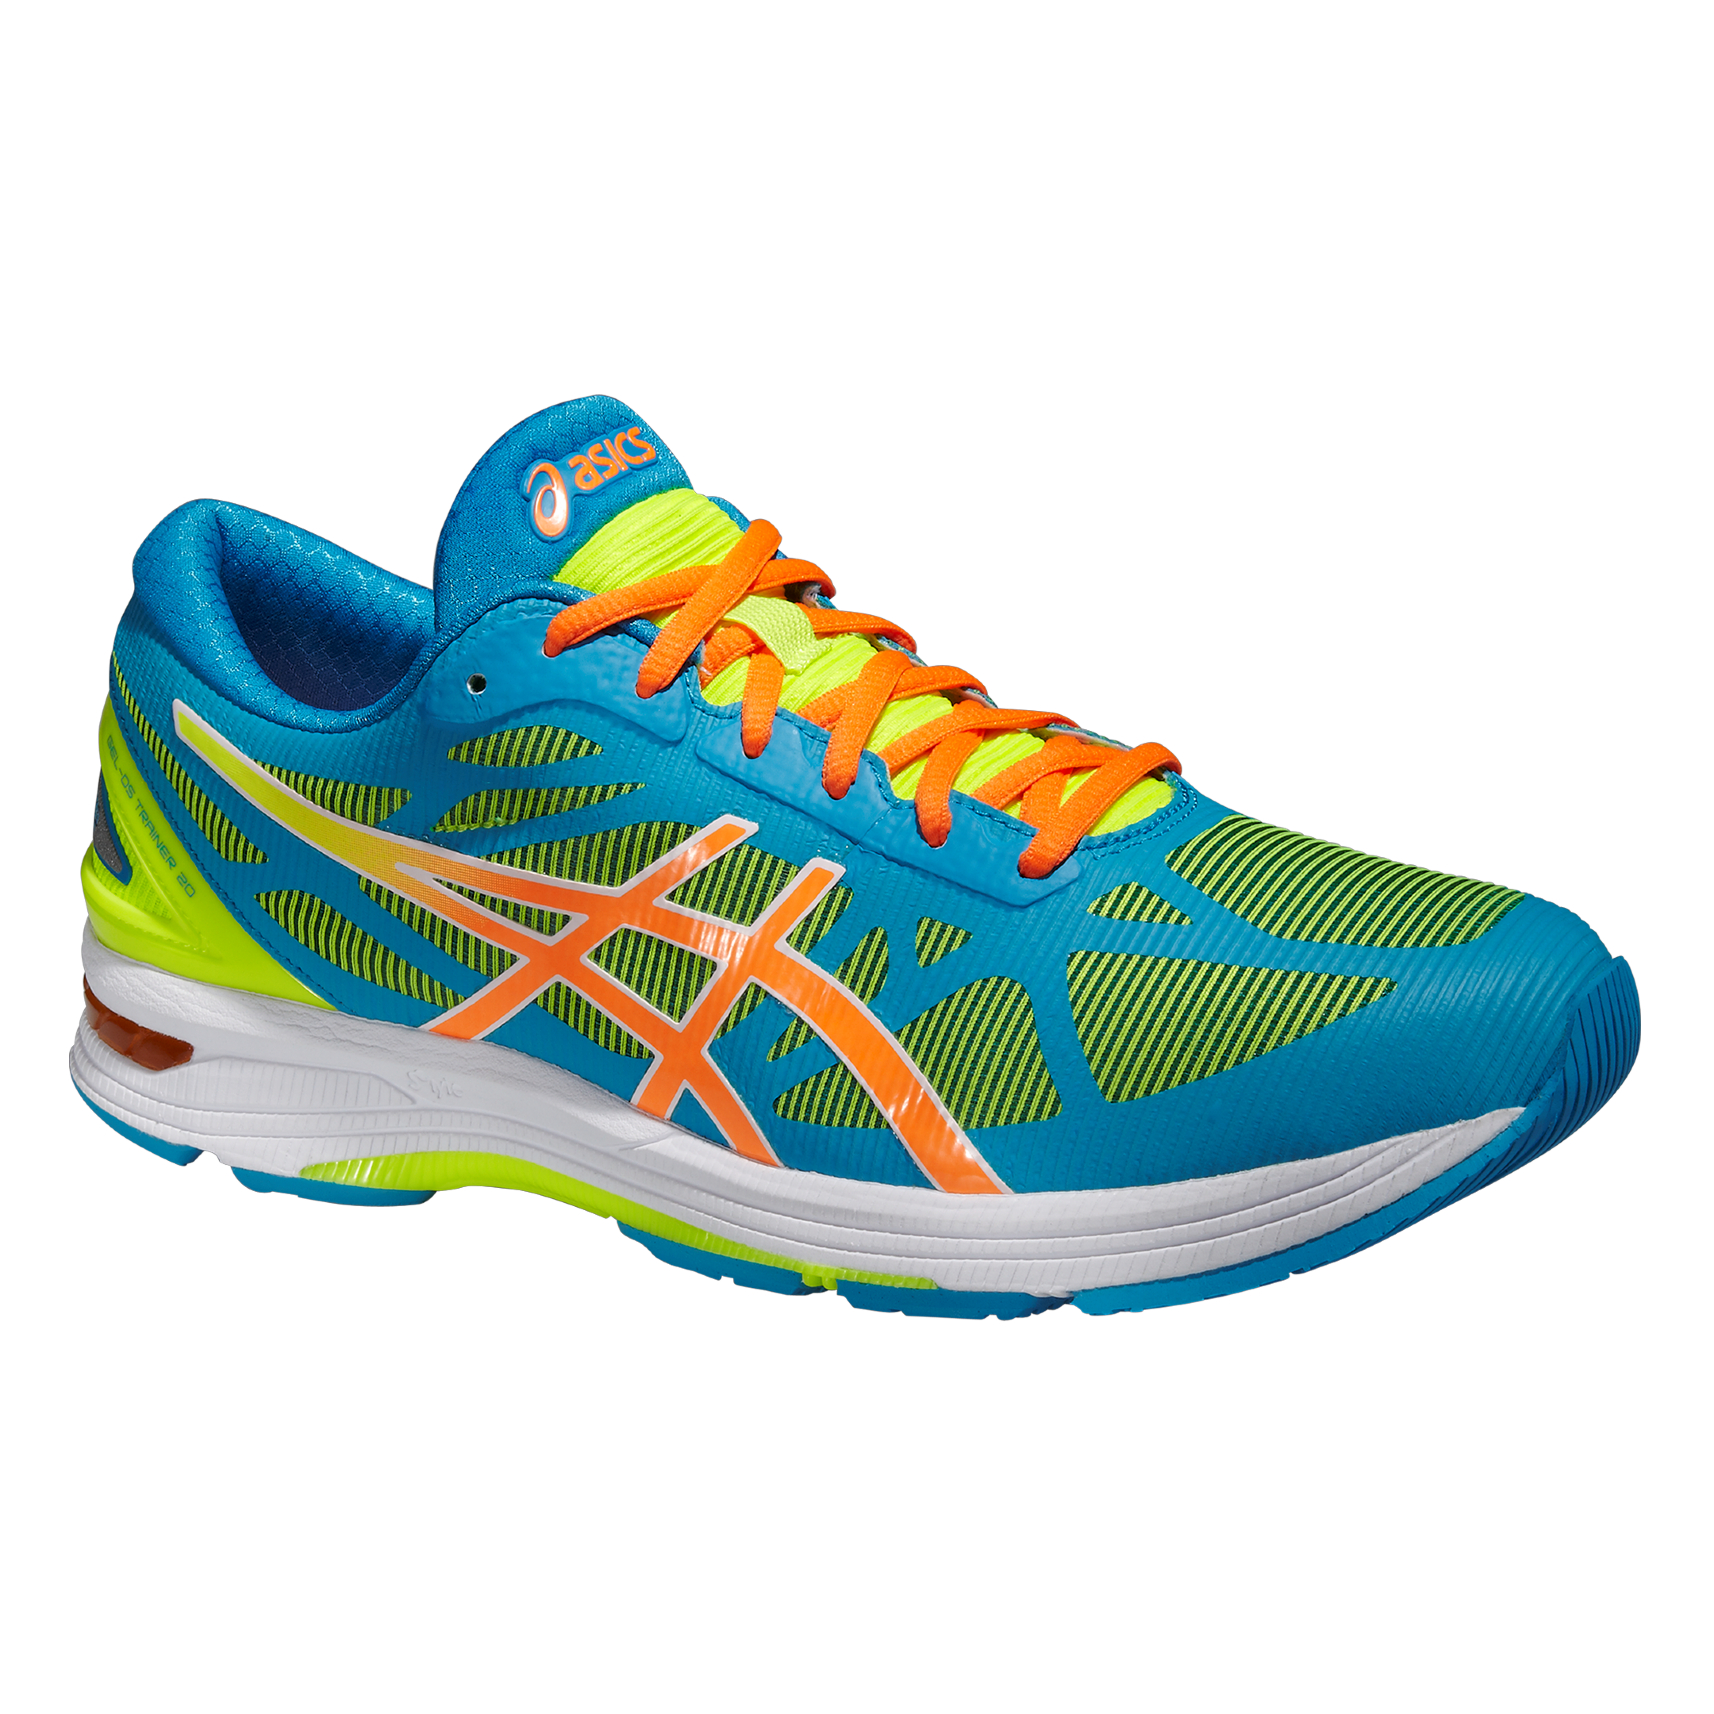 Asics Gel Trainer 20 zapatillas